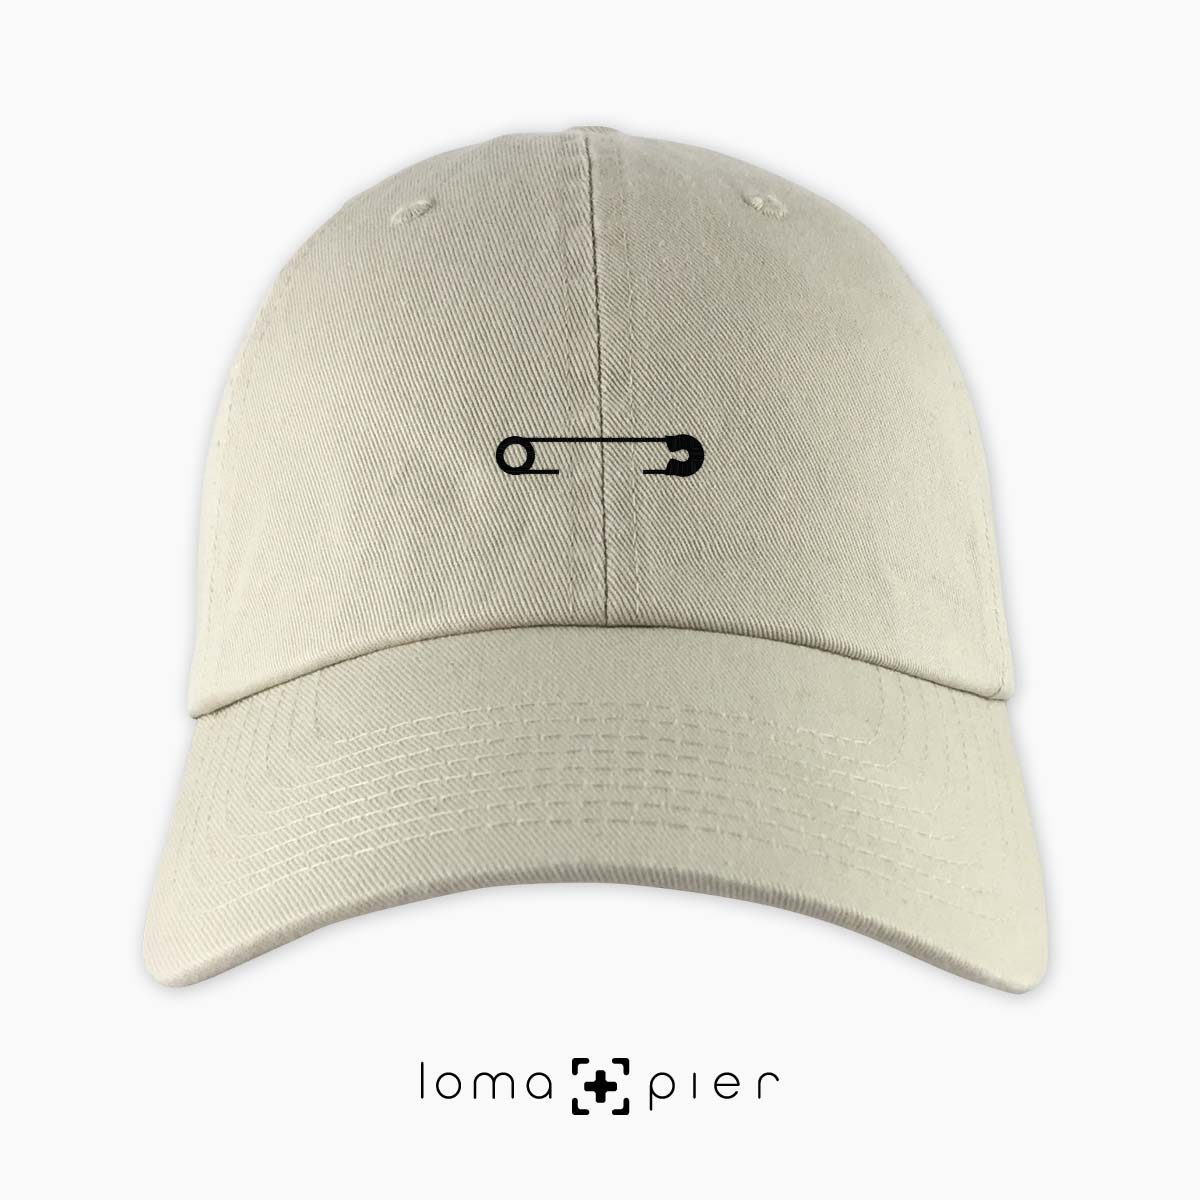 SAFETY PIN icon embroidered on a khaki unstructured dad hat with black thread by loma+pier hat store made in the USA